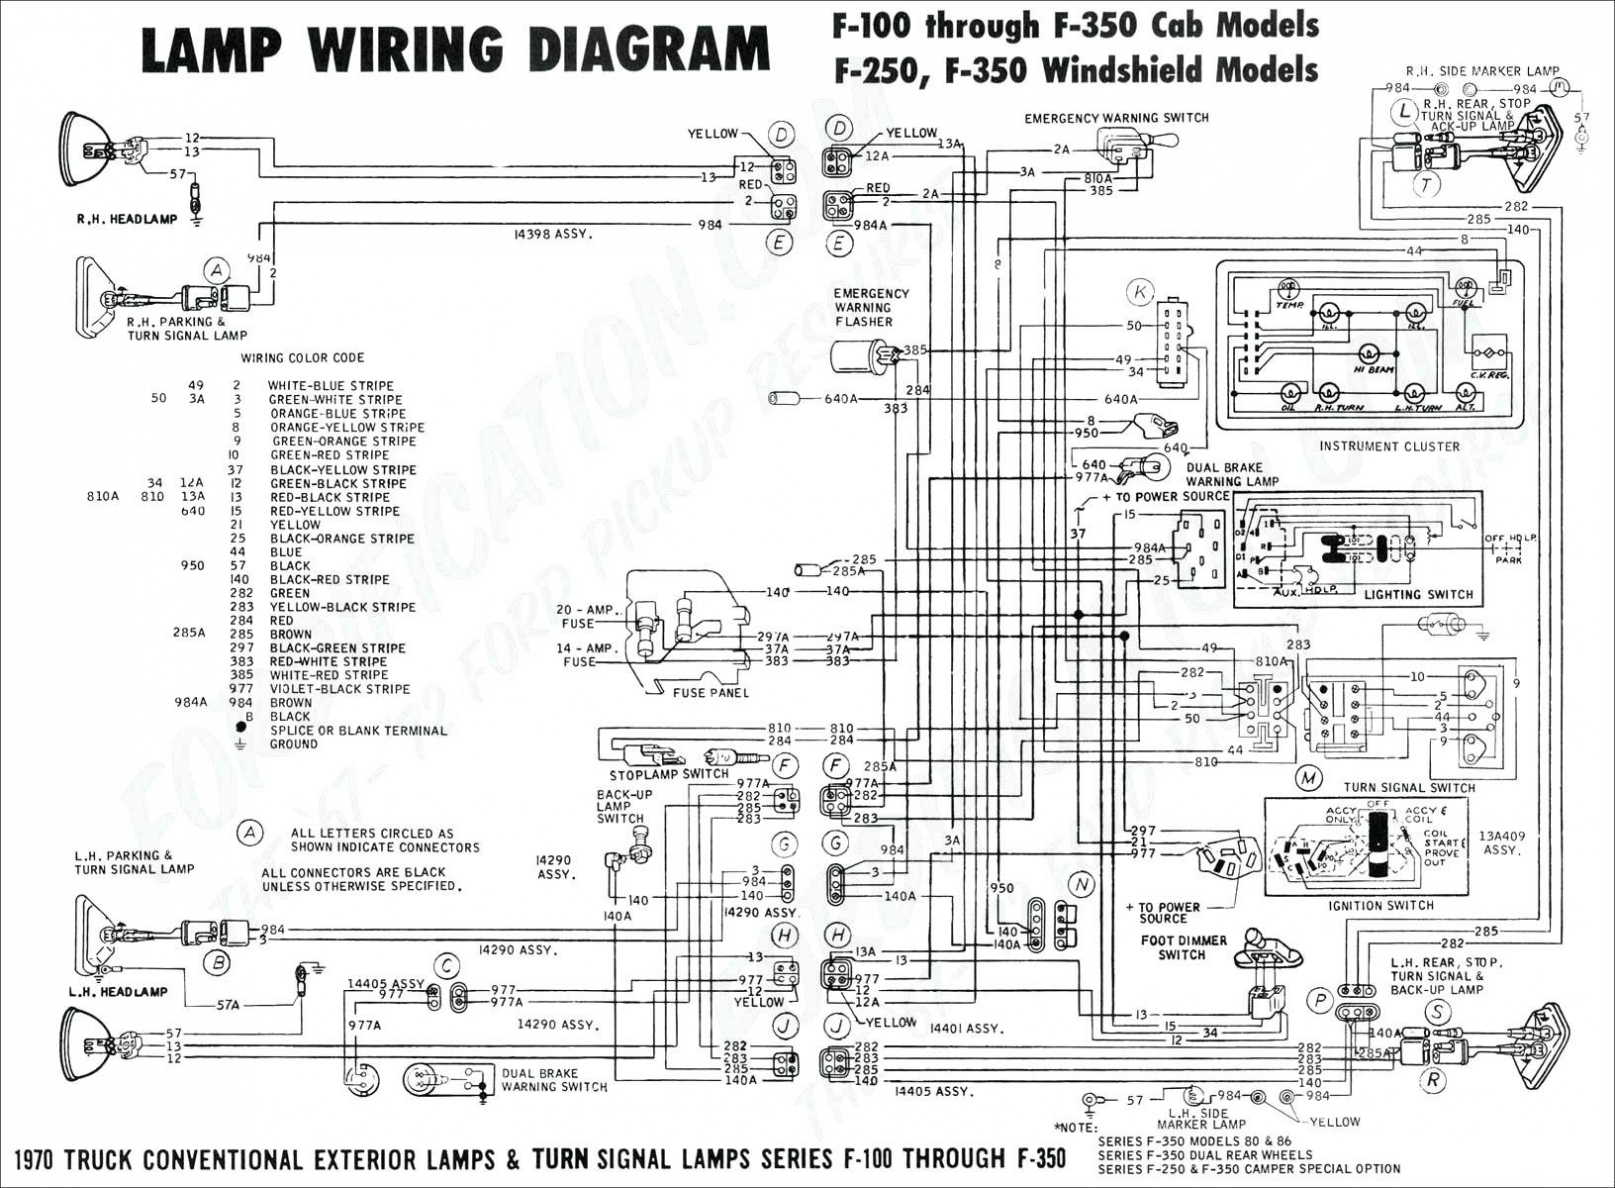 Fiero Wiring Diagrams | Wiring Schematic Diagram - 163 ... on electronic circuit diagrams, led circuit diagrams, switch diagrams, motor diagrams, honda motorcycle repair diagrams, troubleshooting diagrams, transformer diagrams, gmc fuse box diagrams, internet of things diagrams, friendship bracelet diagrams, electrical diagrams, engine diagrams, series and parallel circuits diagrams, pinout diagrams, lighting diagrams, sincgars radio configurations diagrams, hvac diagrams, battery diagrams, smart car diagrams,